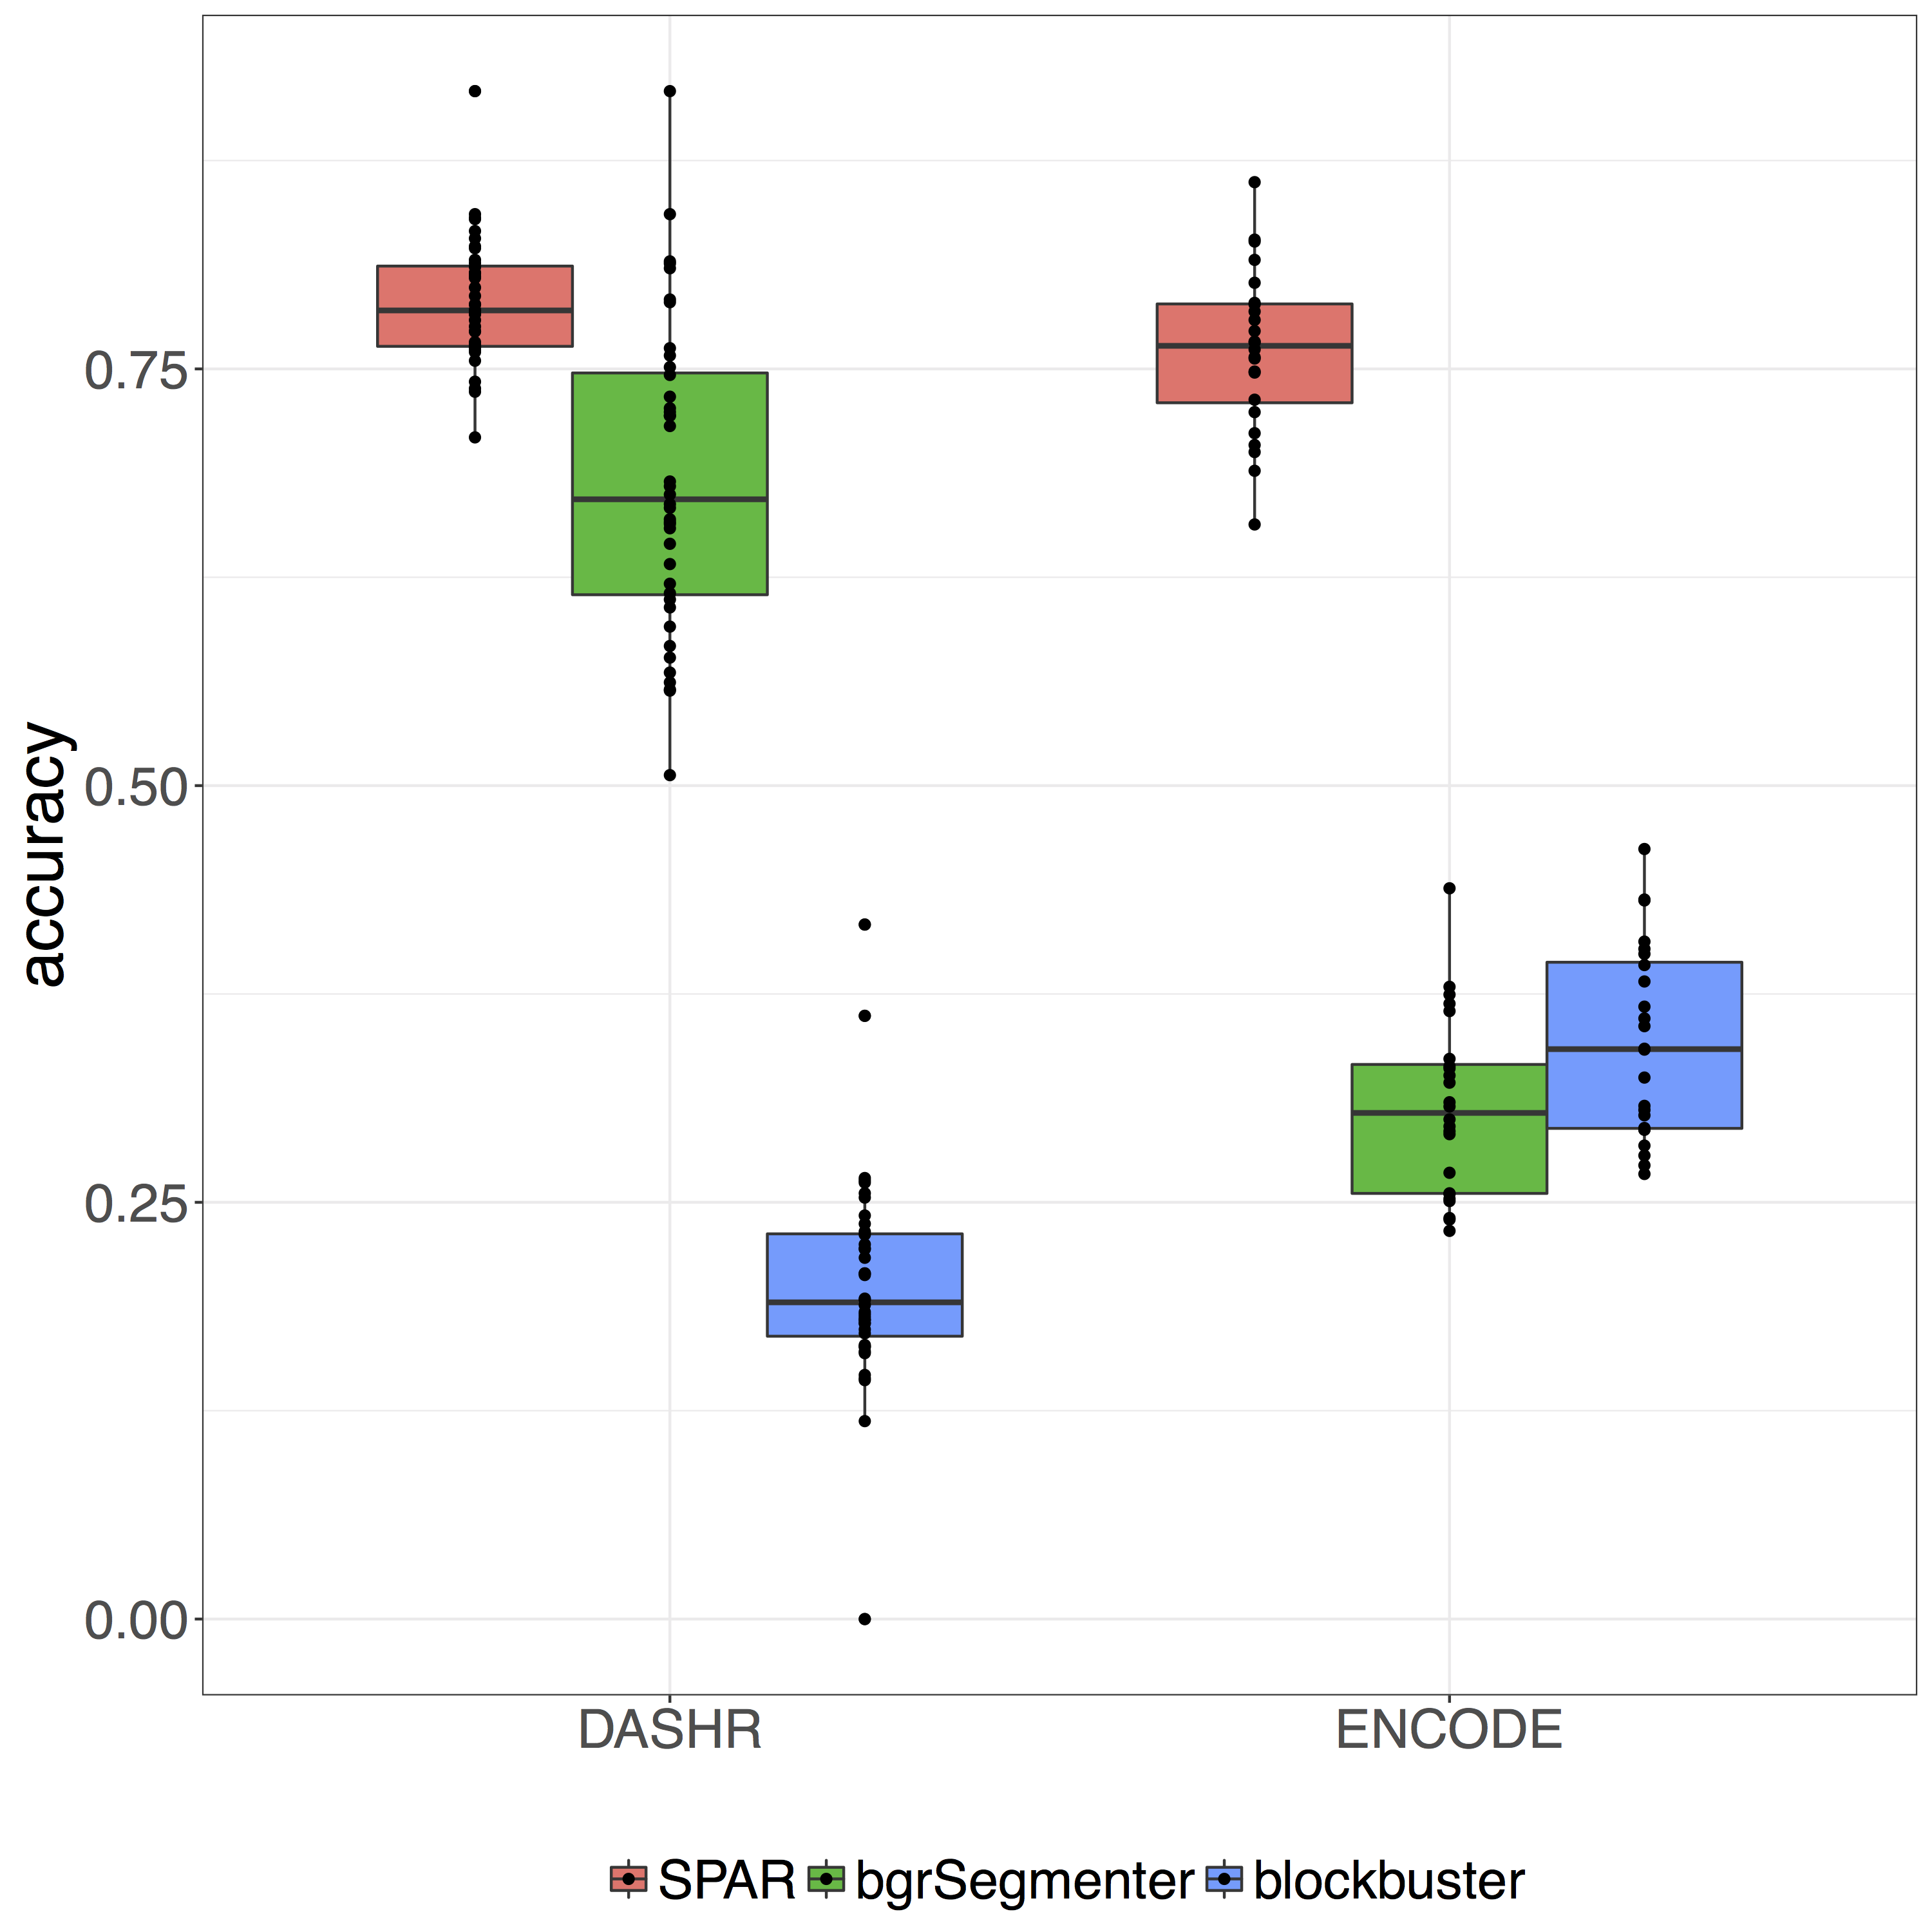 SPAR small RNA/miRNA detection accuracy on ENCODE and DASHR datasets